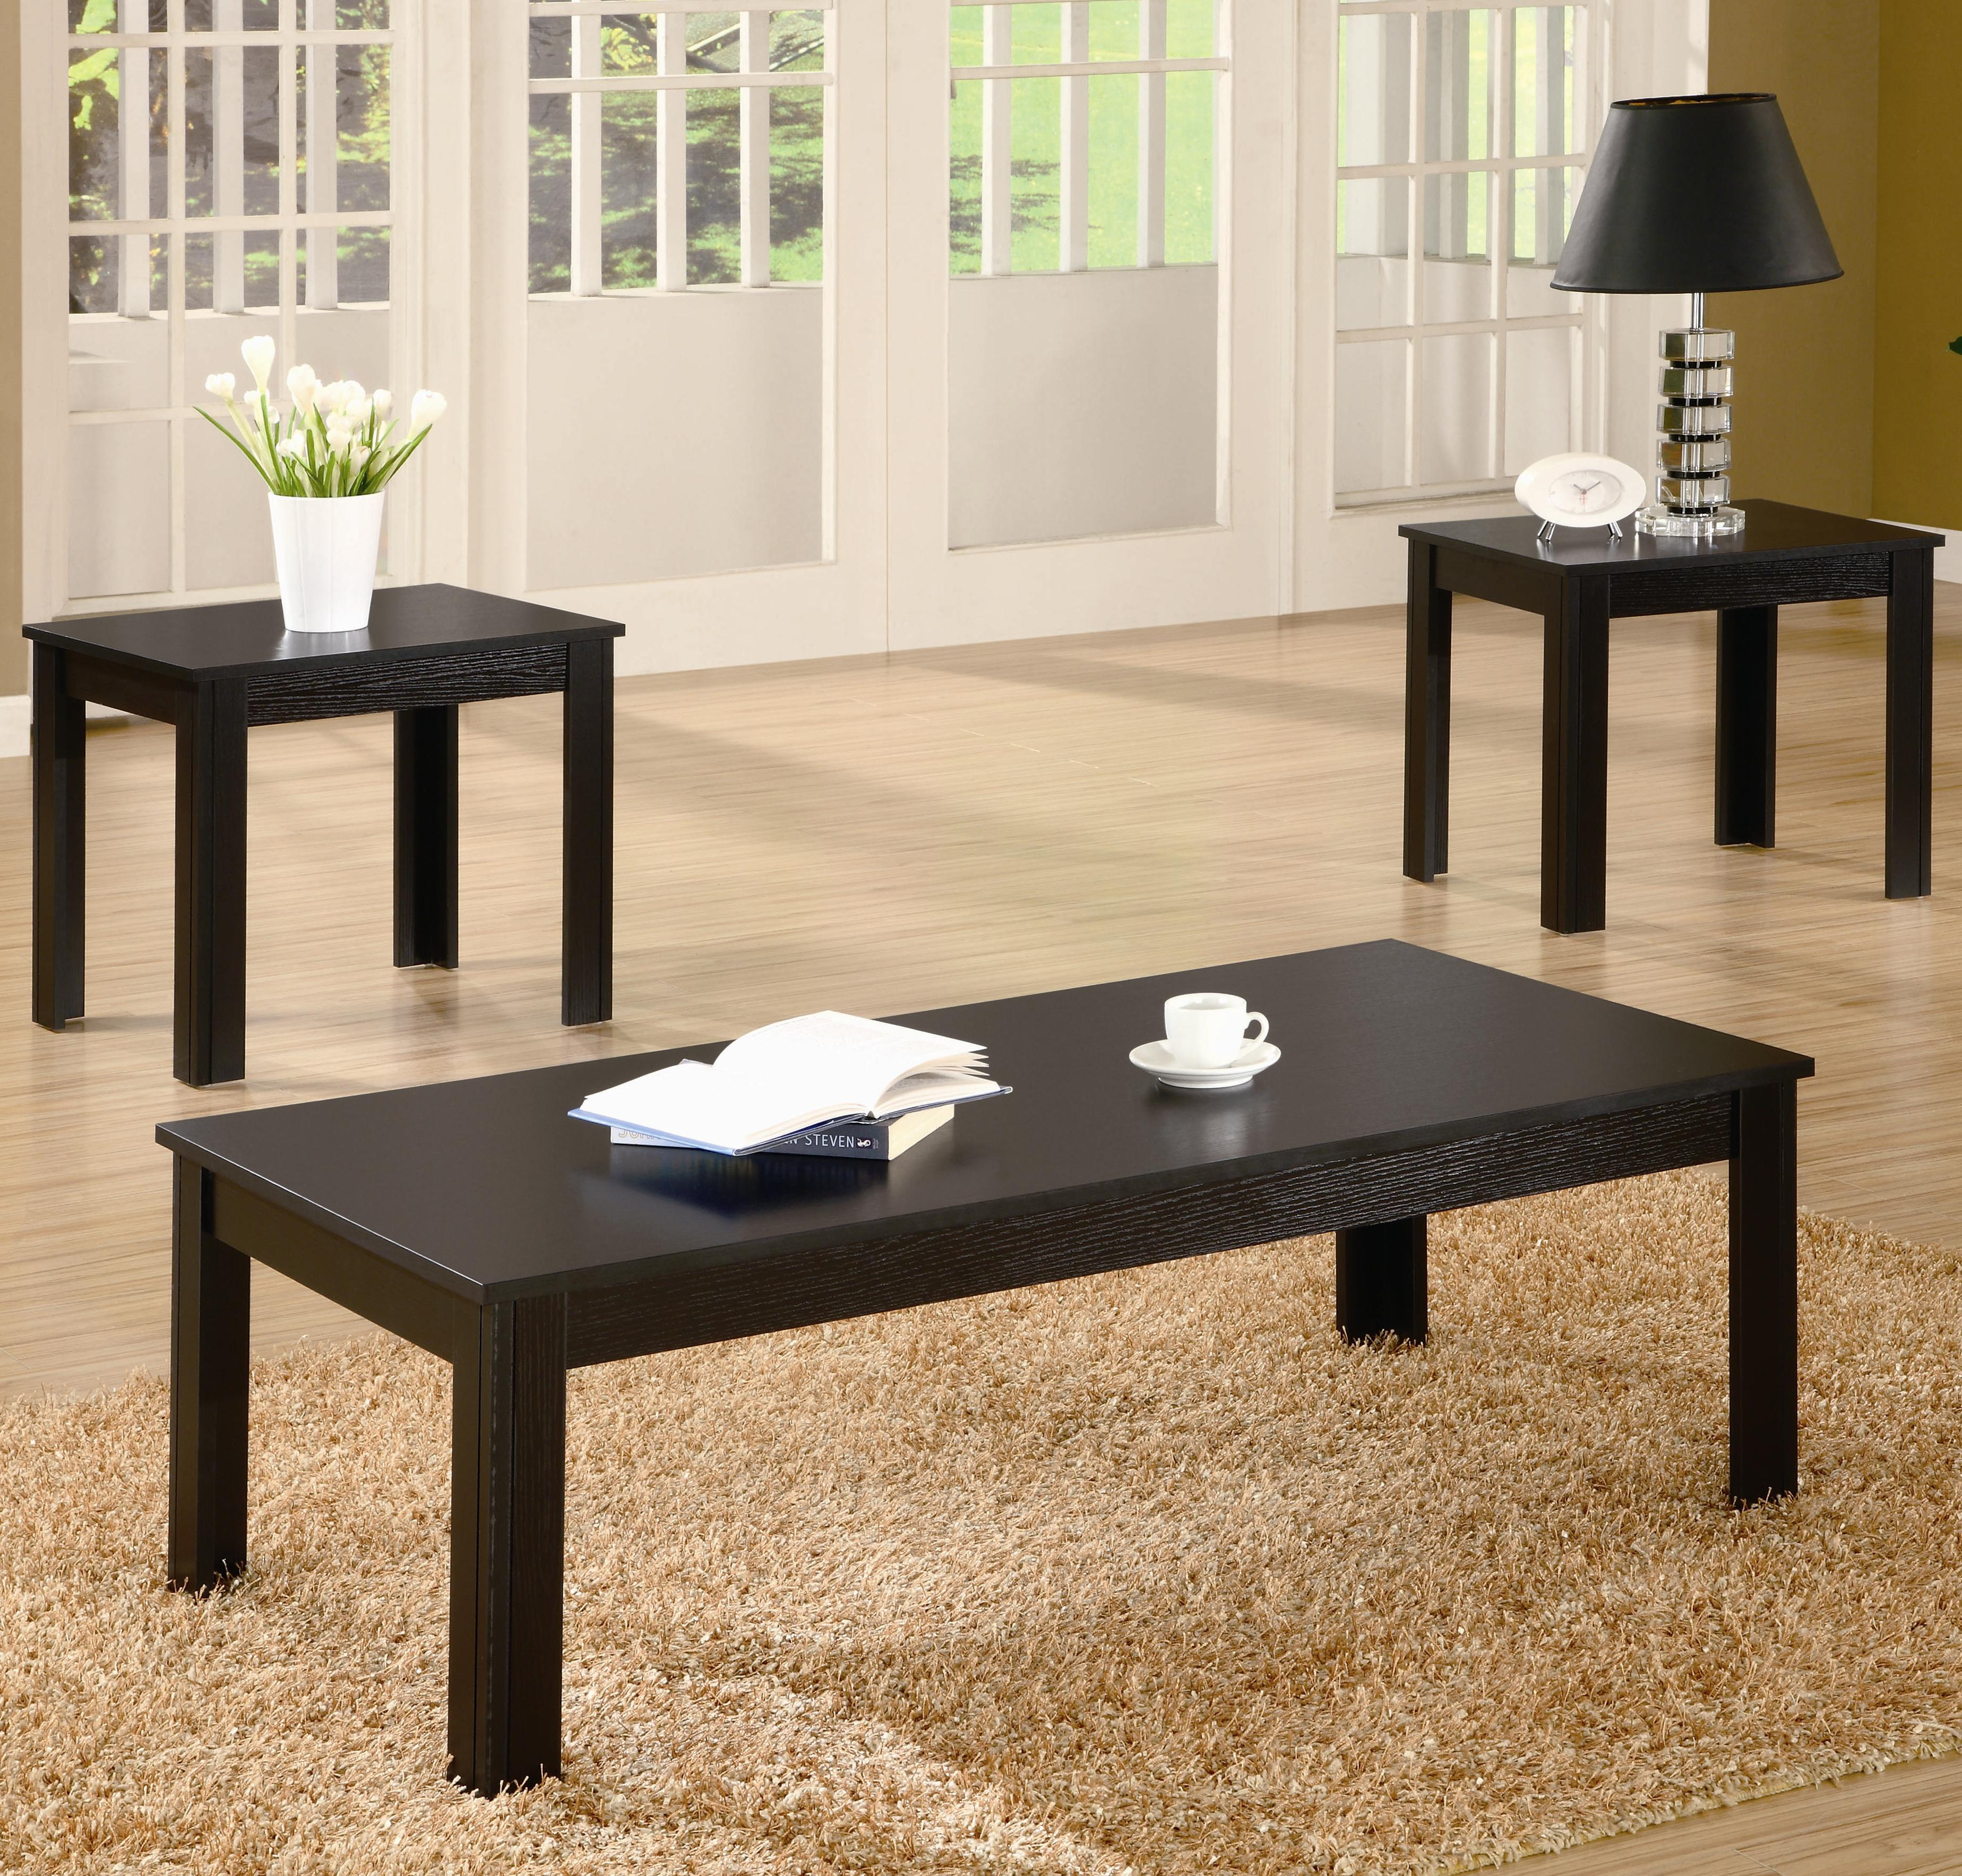 coffee tables ideas spectacular black and end table set windows sample themes amazing all accreditation trendy small antique blue side universal dining furniture riverside